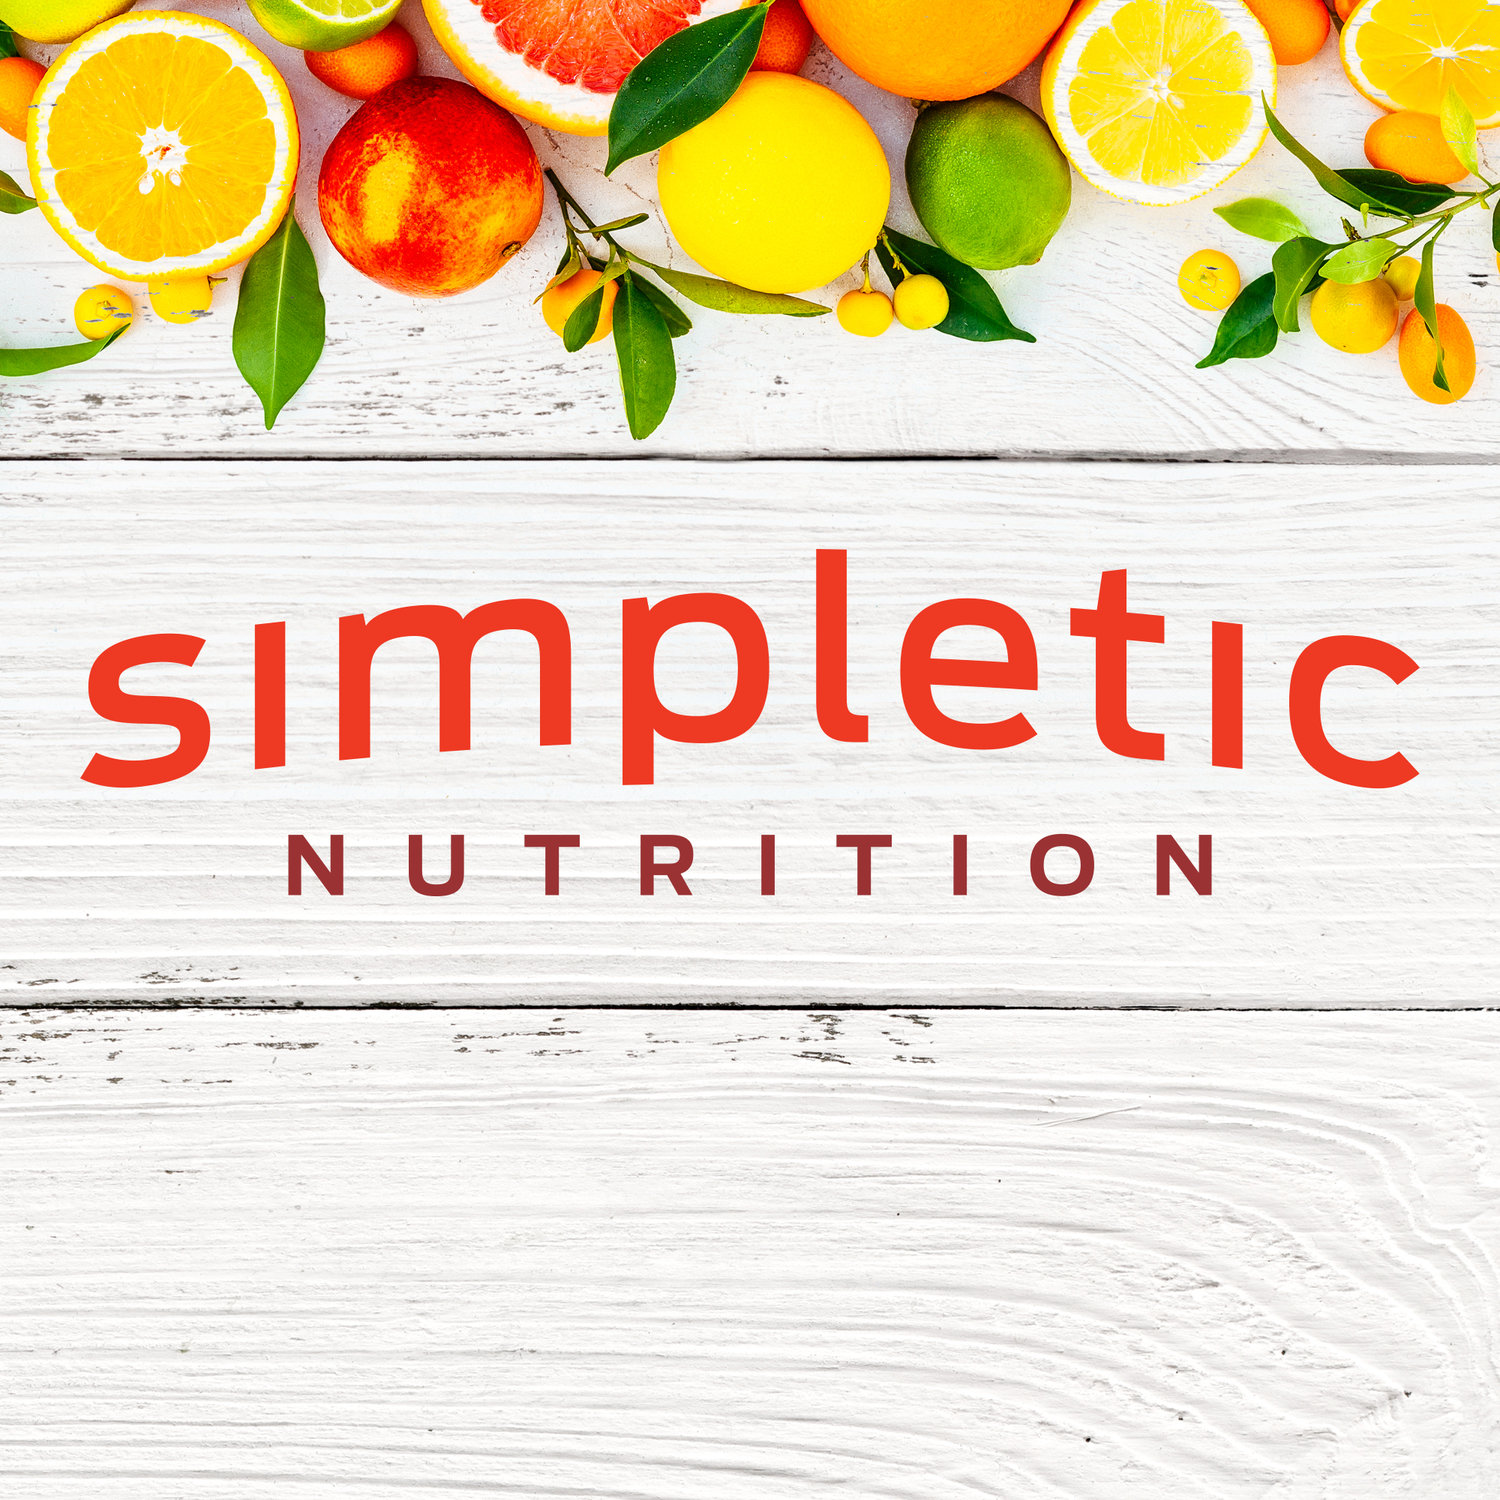 Simpletic Nutrition